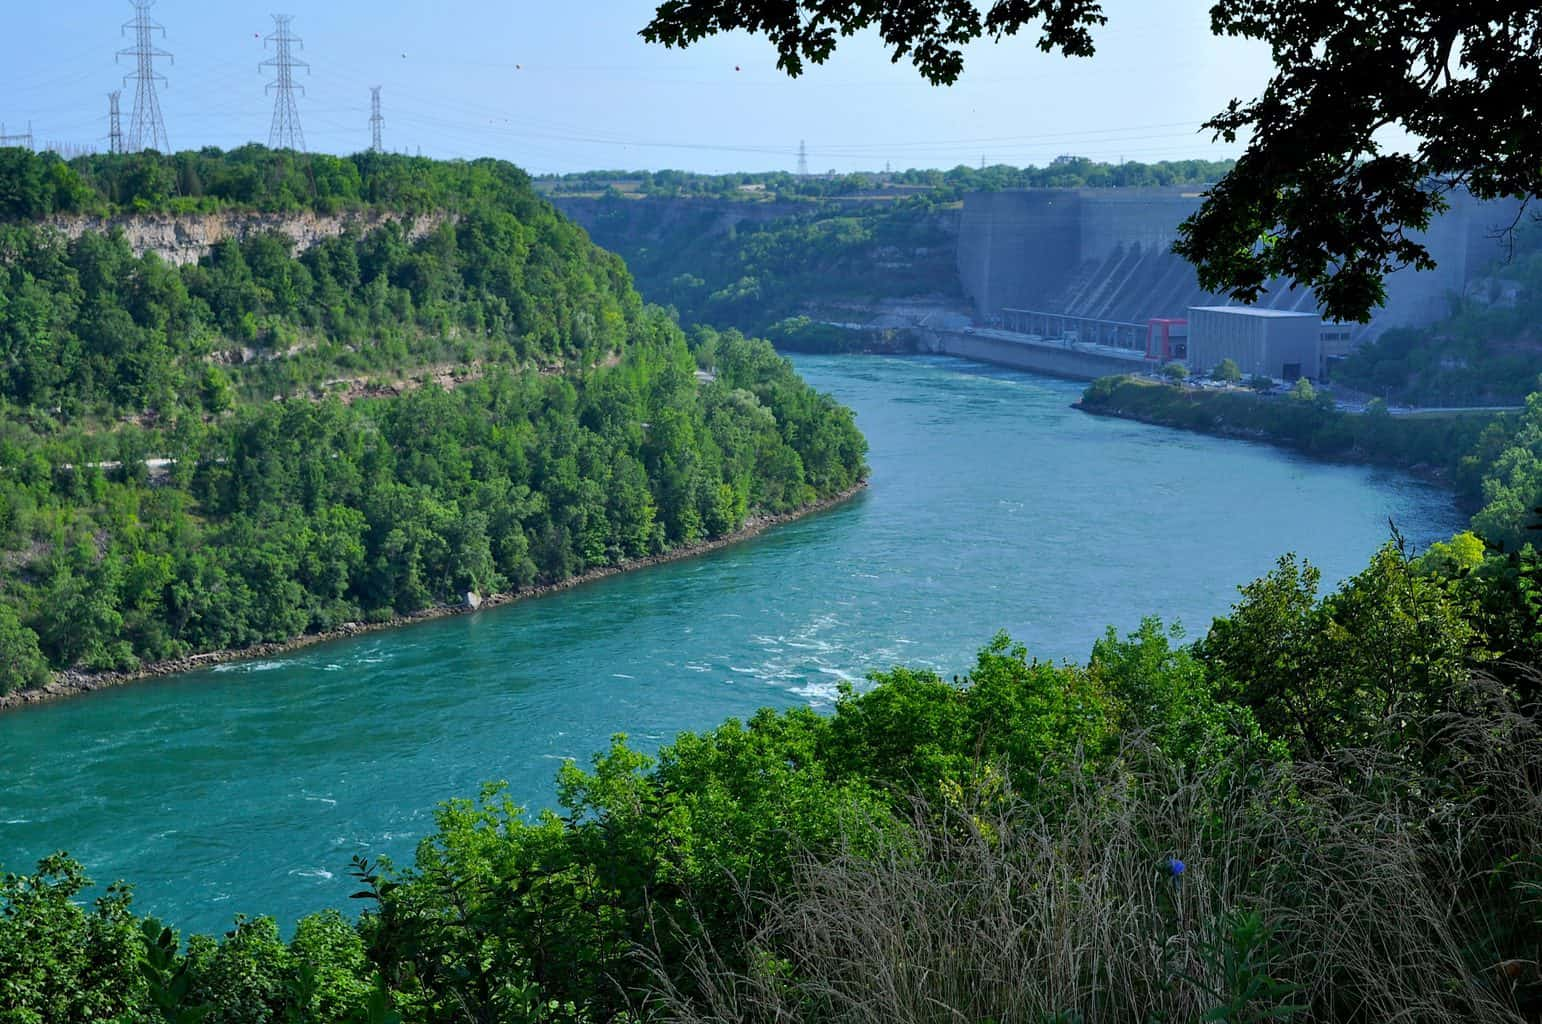 A panoramic view of Devil's Hole National Park near Niagara Falls in NY. Image sourced from Curtis Anderson on Flickr.